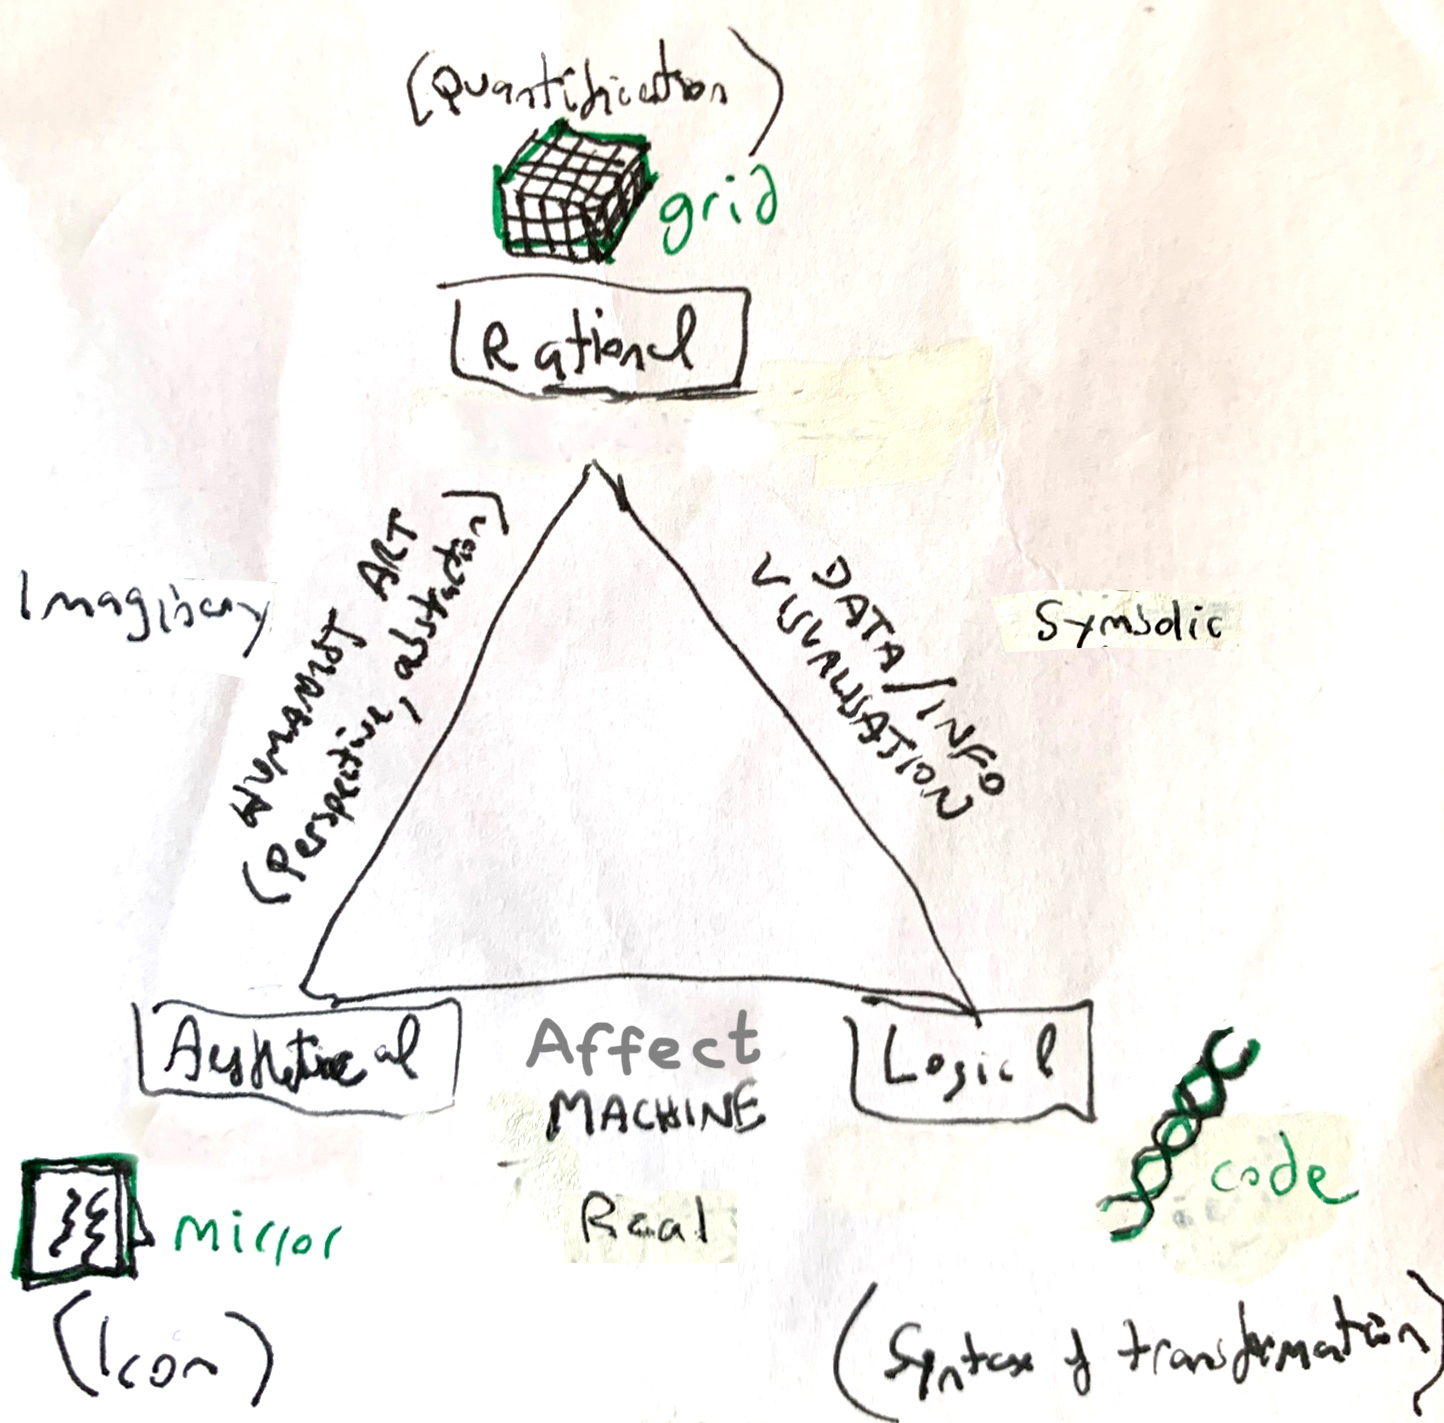 Dean Kenning, 'Aesthetical-Rational-Logical Diagram', pen and tippex on paper, 2020 (Diagram Research Group 3)